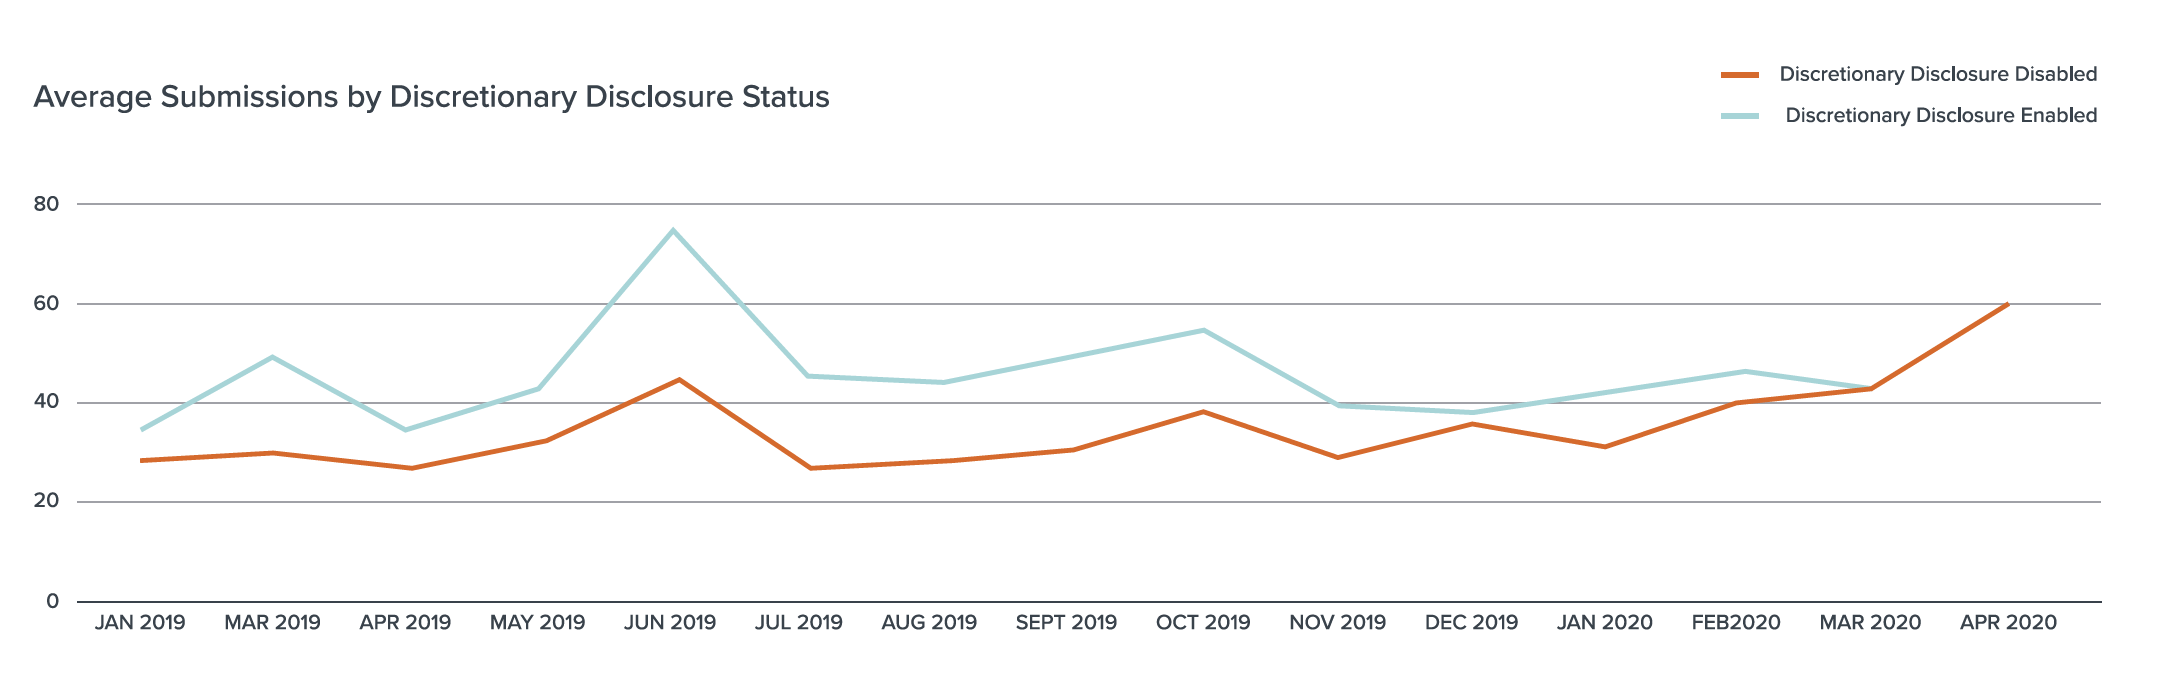 Average Submissions by Discretionary Disclosure Status